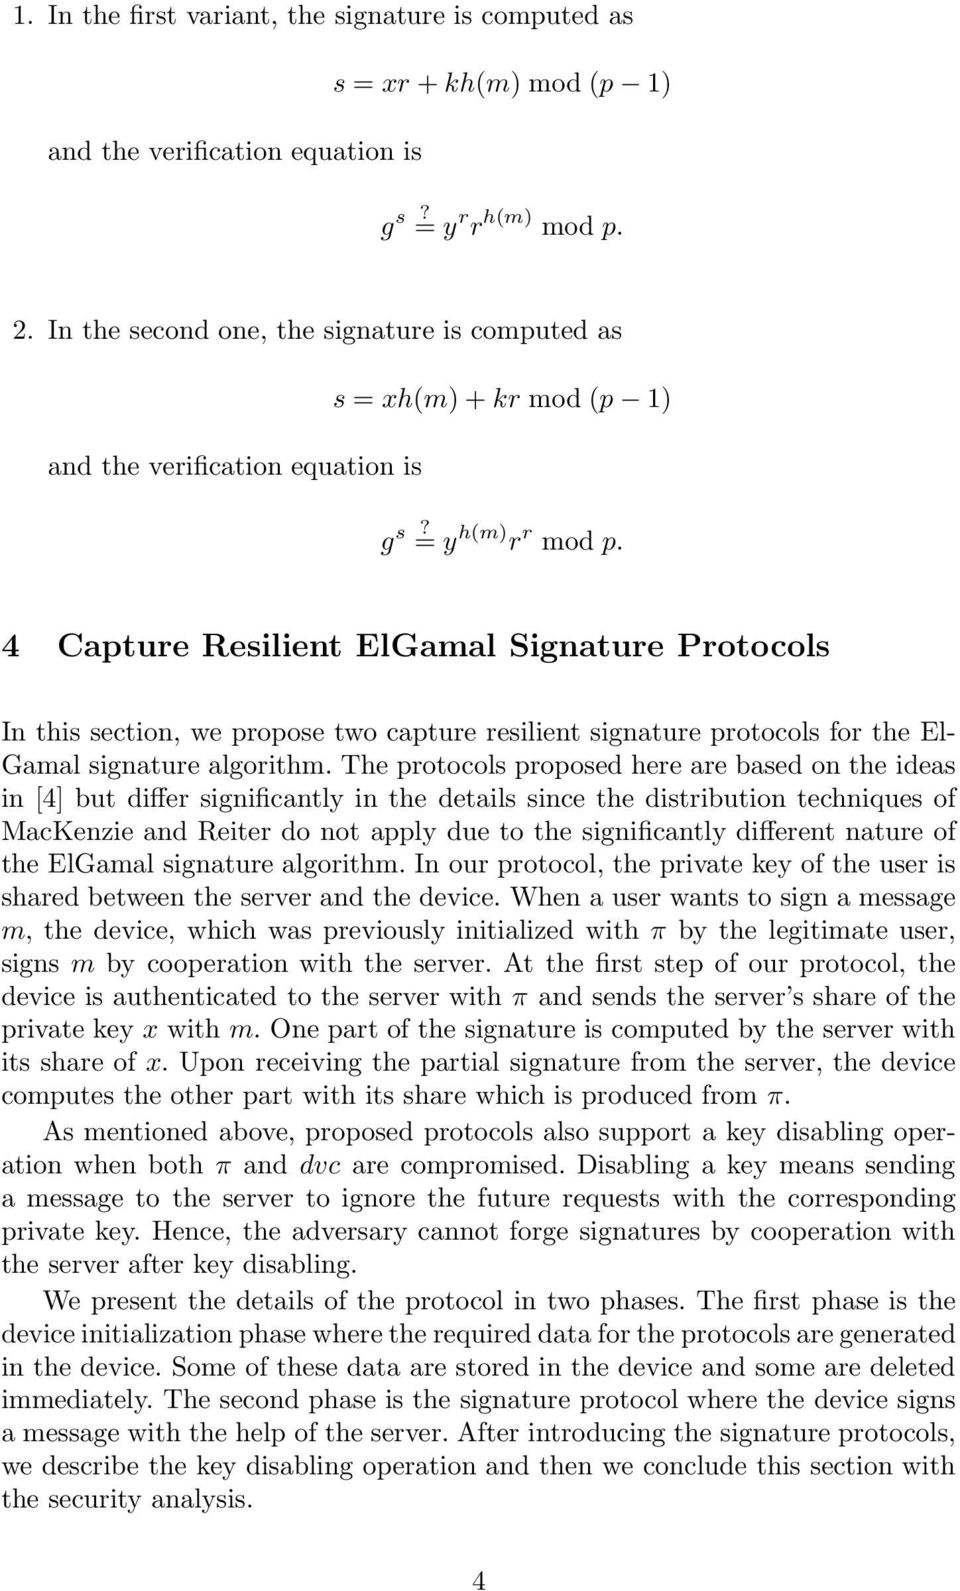 4 Capture Resilient ElGamal Signature Protocols In this section, we propose two capture resilient signature protocols for the El- Gamal signature algorithm.